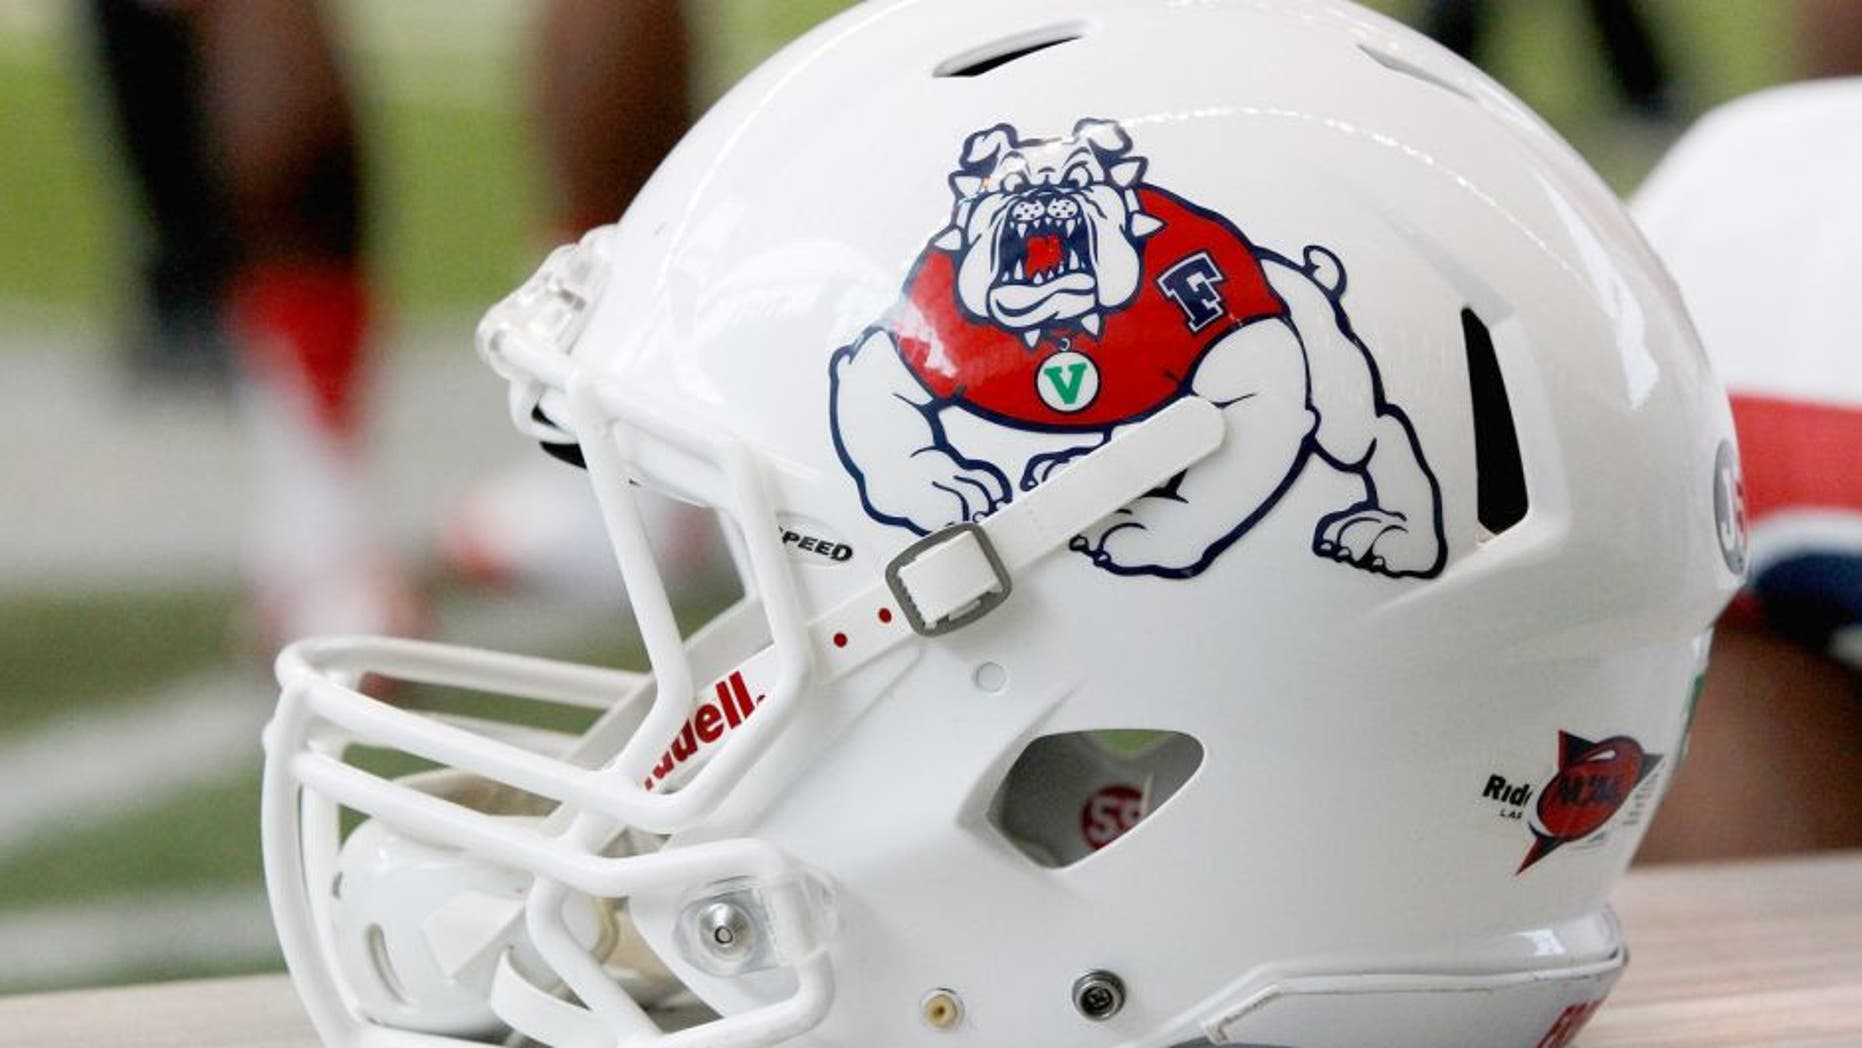 MOSCOW, ID - OCTOBER 05: A Fresno State Bulldogs football helmet sits on the sideline during the game between the Fresno State Bulldogs and the Idaho Vandals on October 5, 2013 at the Kibbie Dome in Moscow, Idaho. (Photo by William Mancebo/Getty Images)